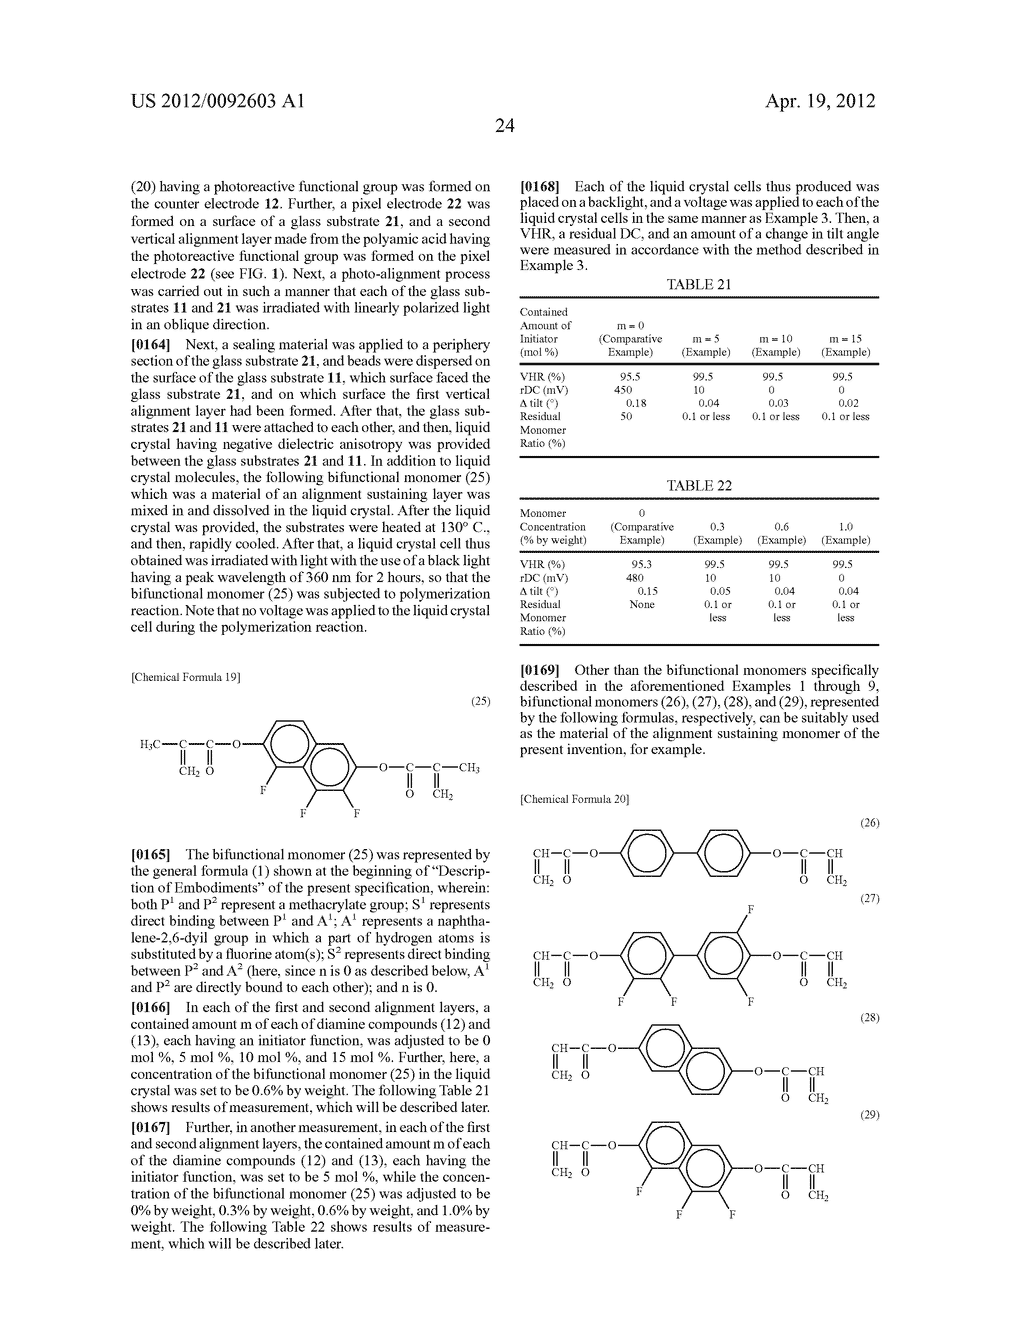 LIQUID CRYSTAL DISPLAY DEVICE AND MANUFACTURING METHOD THEREFOR - diagram, schematic, and image 27